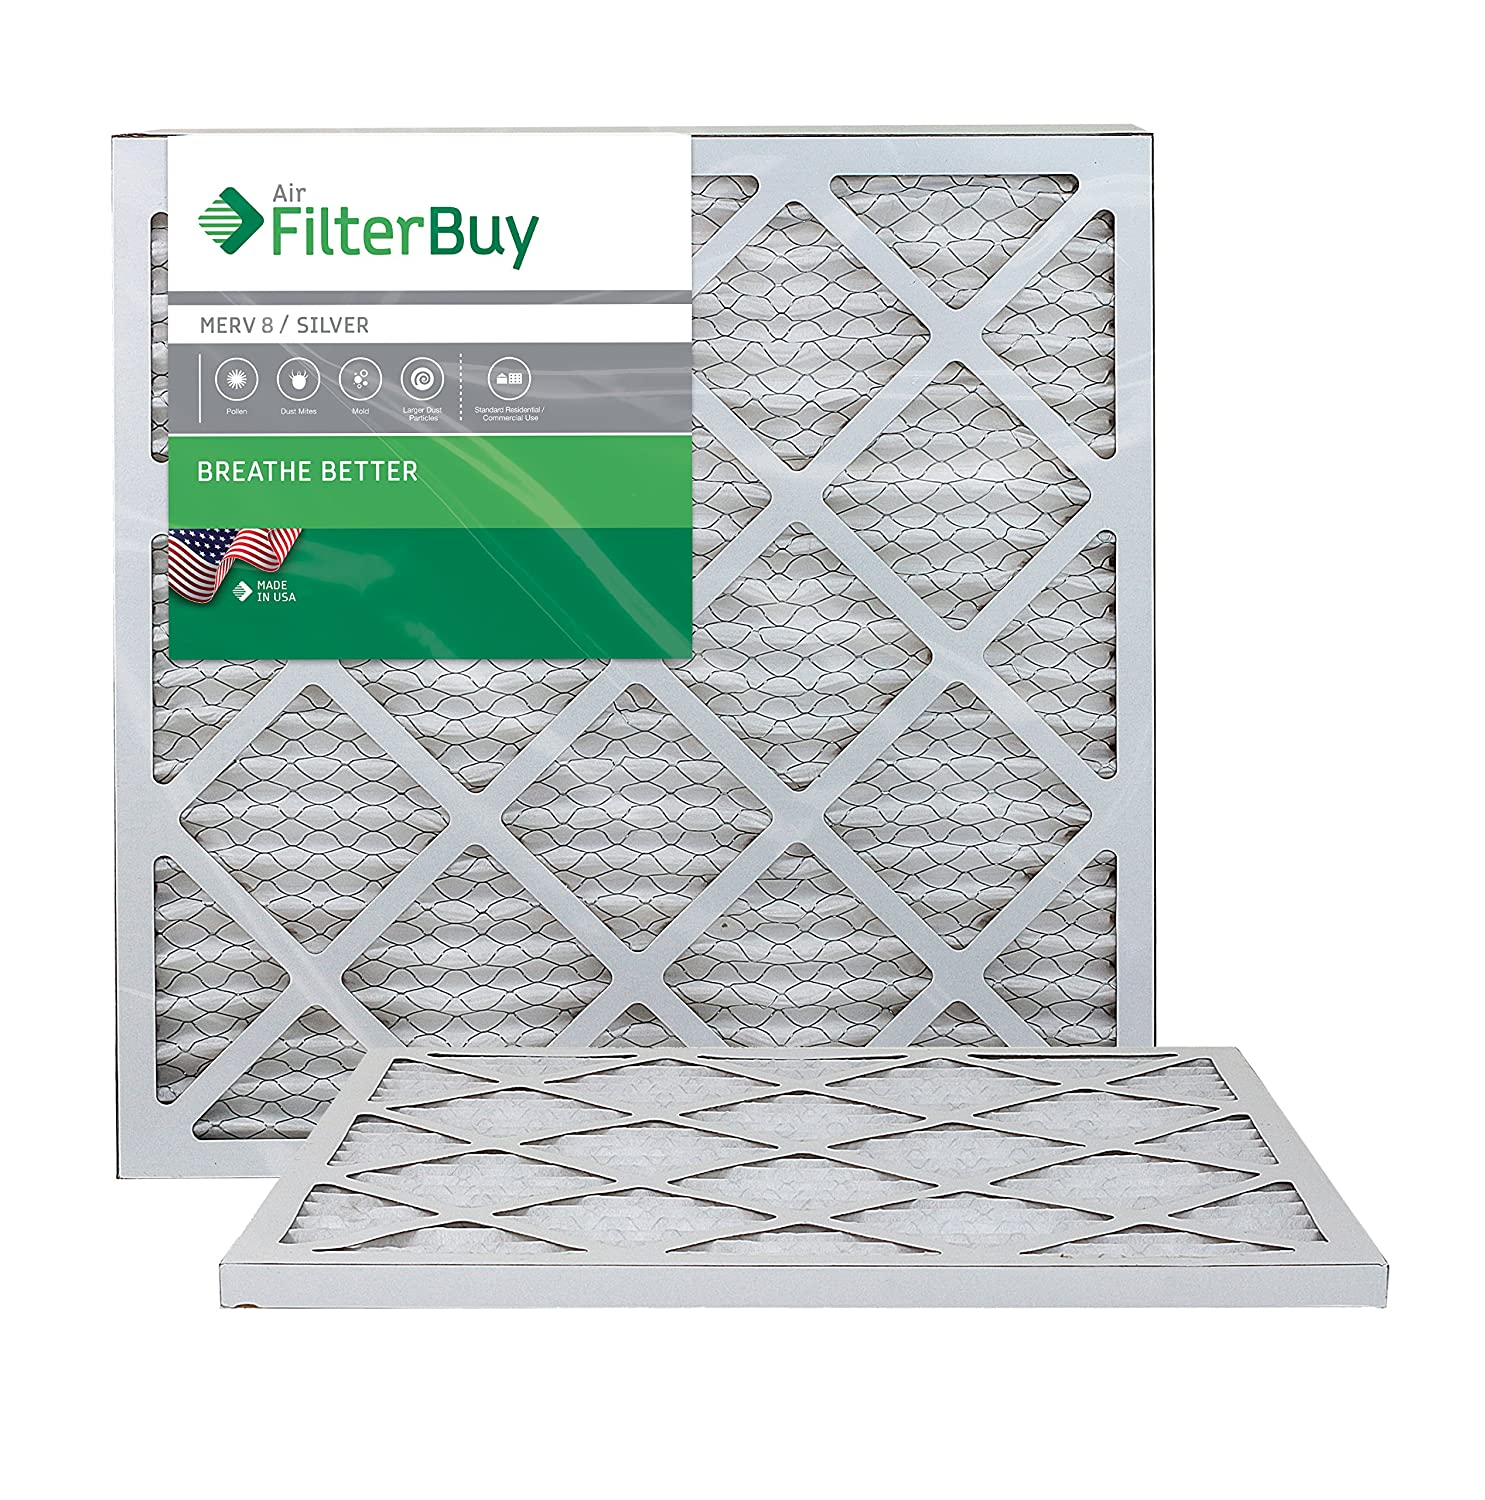 FilterBuy 20x21.5x1 MERV 8 Pleated AC Furnace Air Filter, (Pack of 2 Filters), 20x21.5x1 – Silver